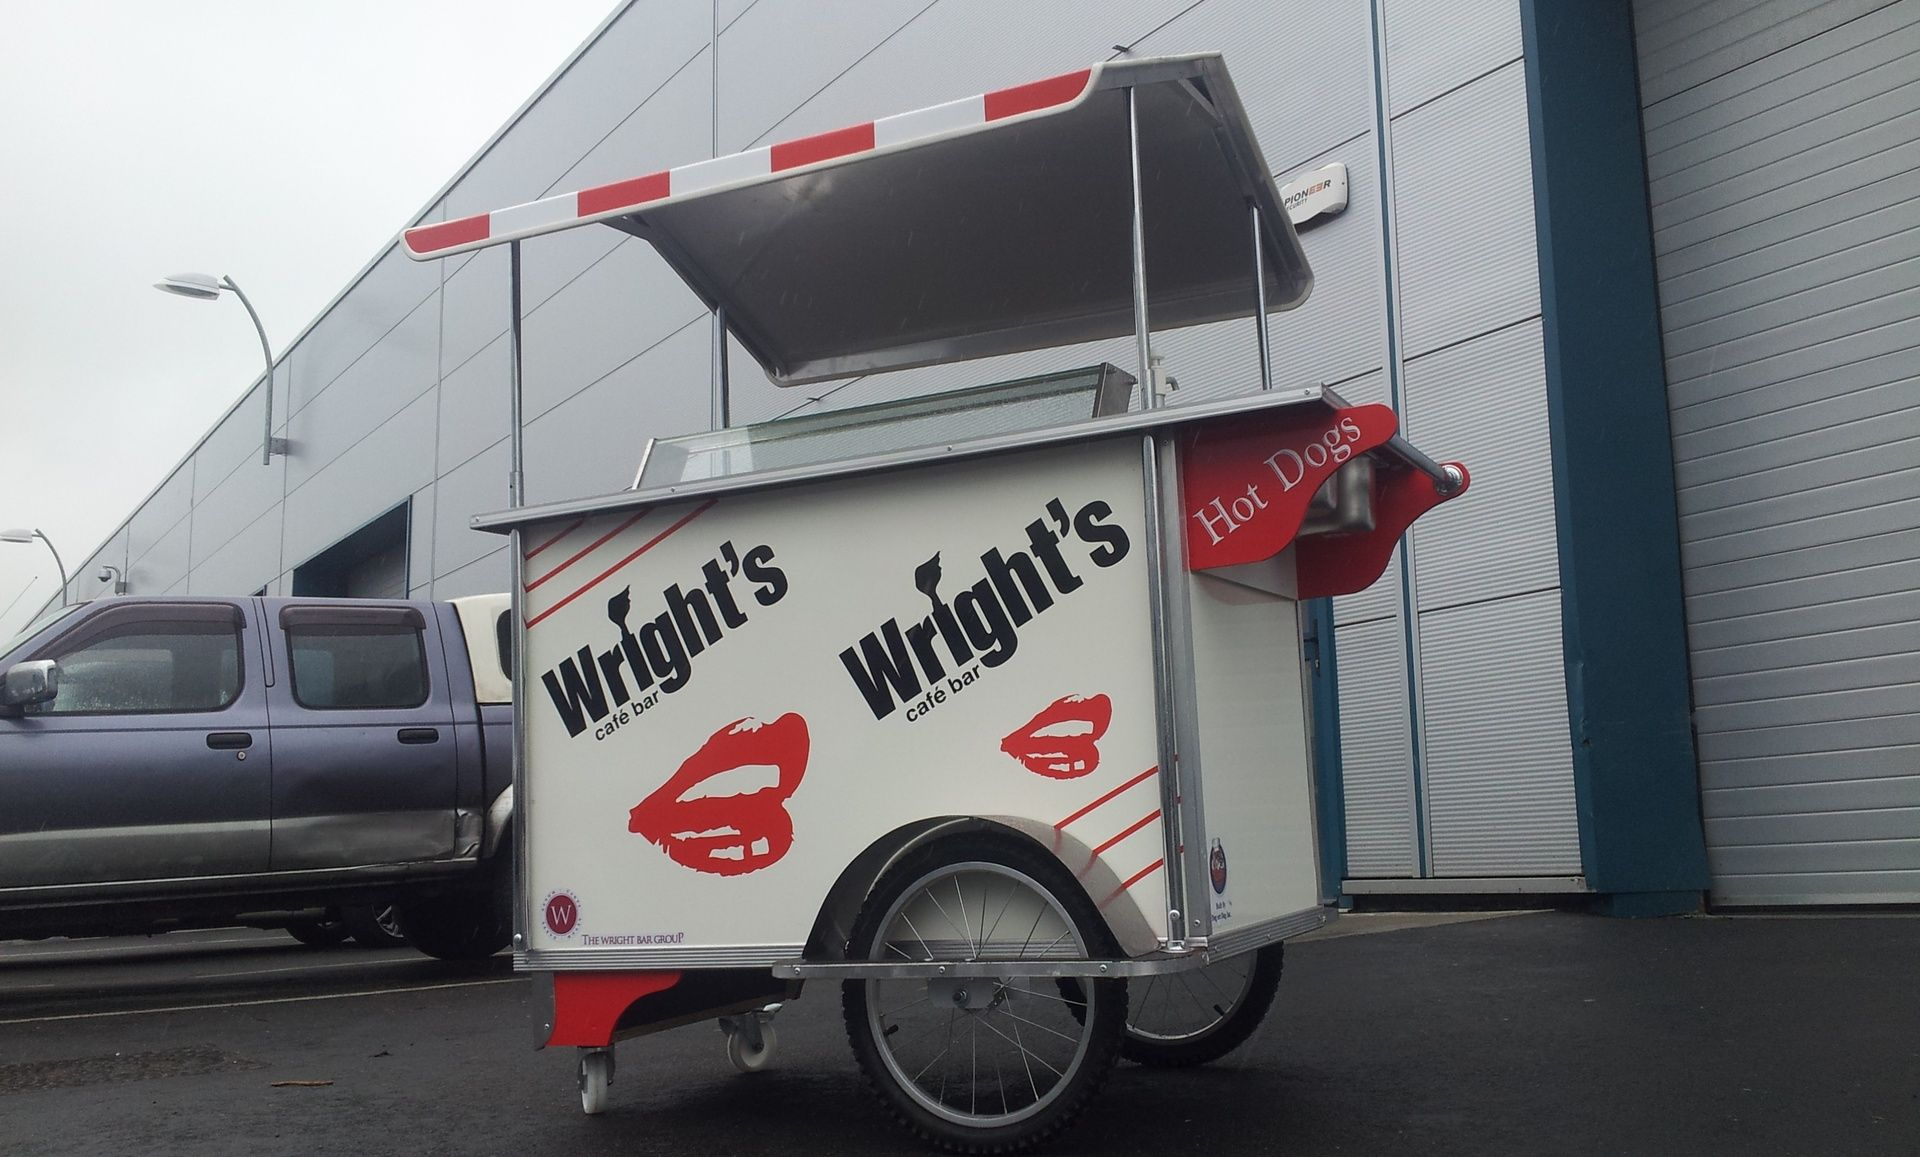 Wrights Cafe Bar Hot Dog Cart Catering Trailer Catering Van